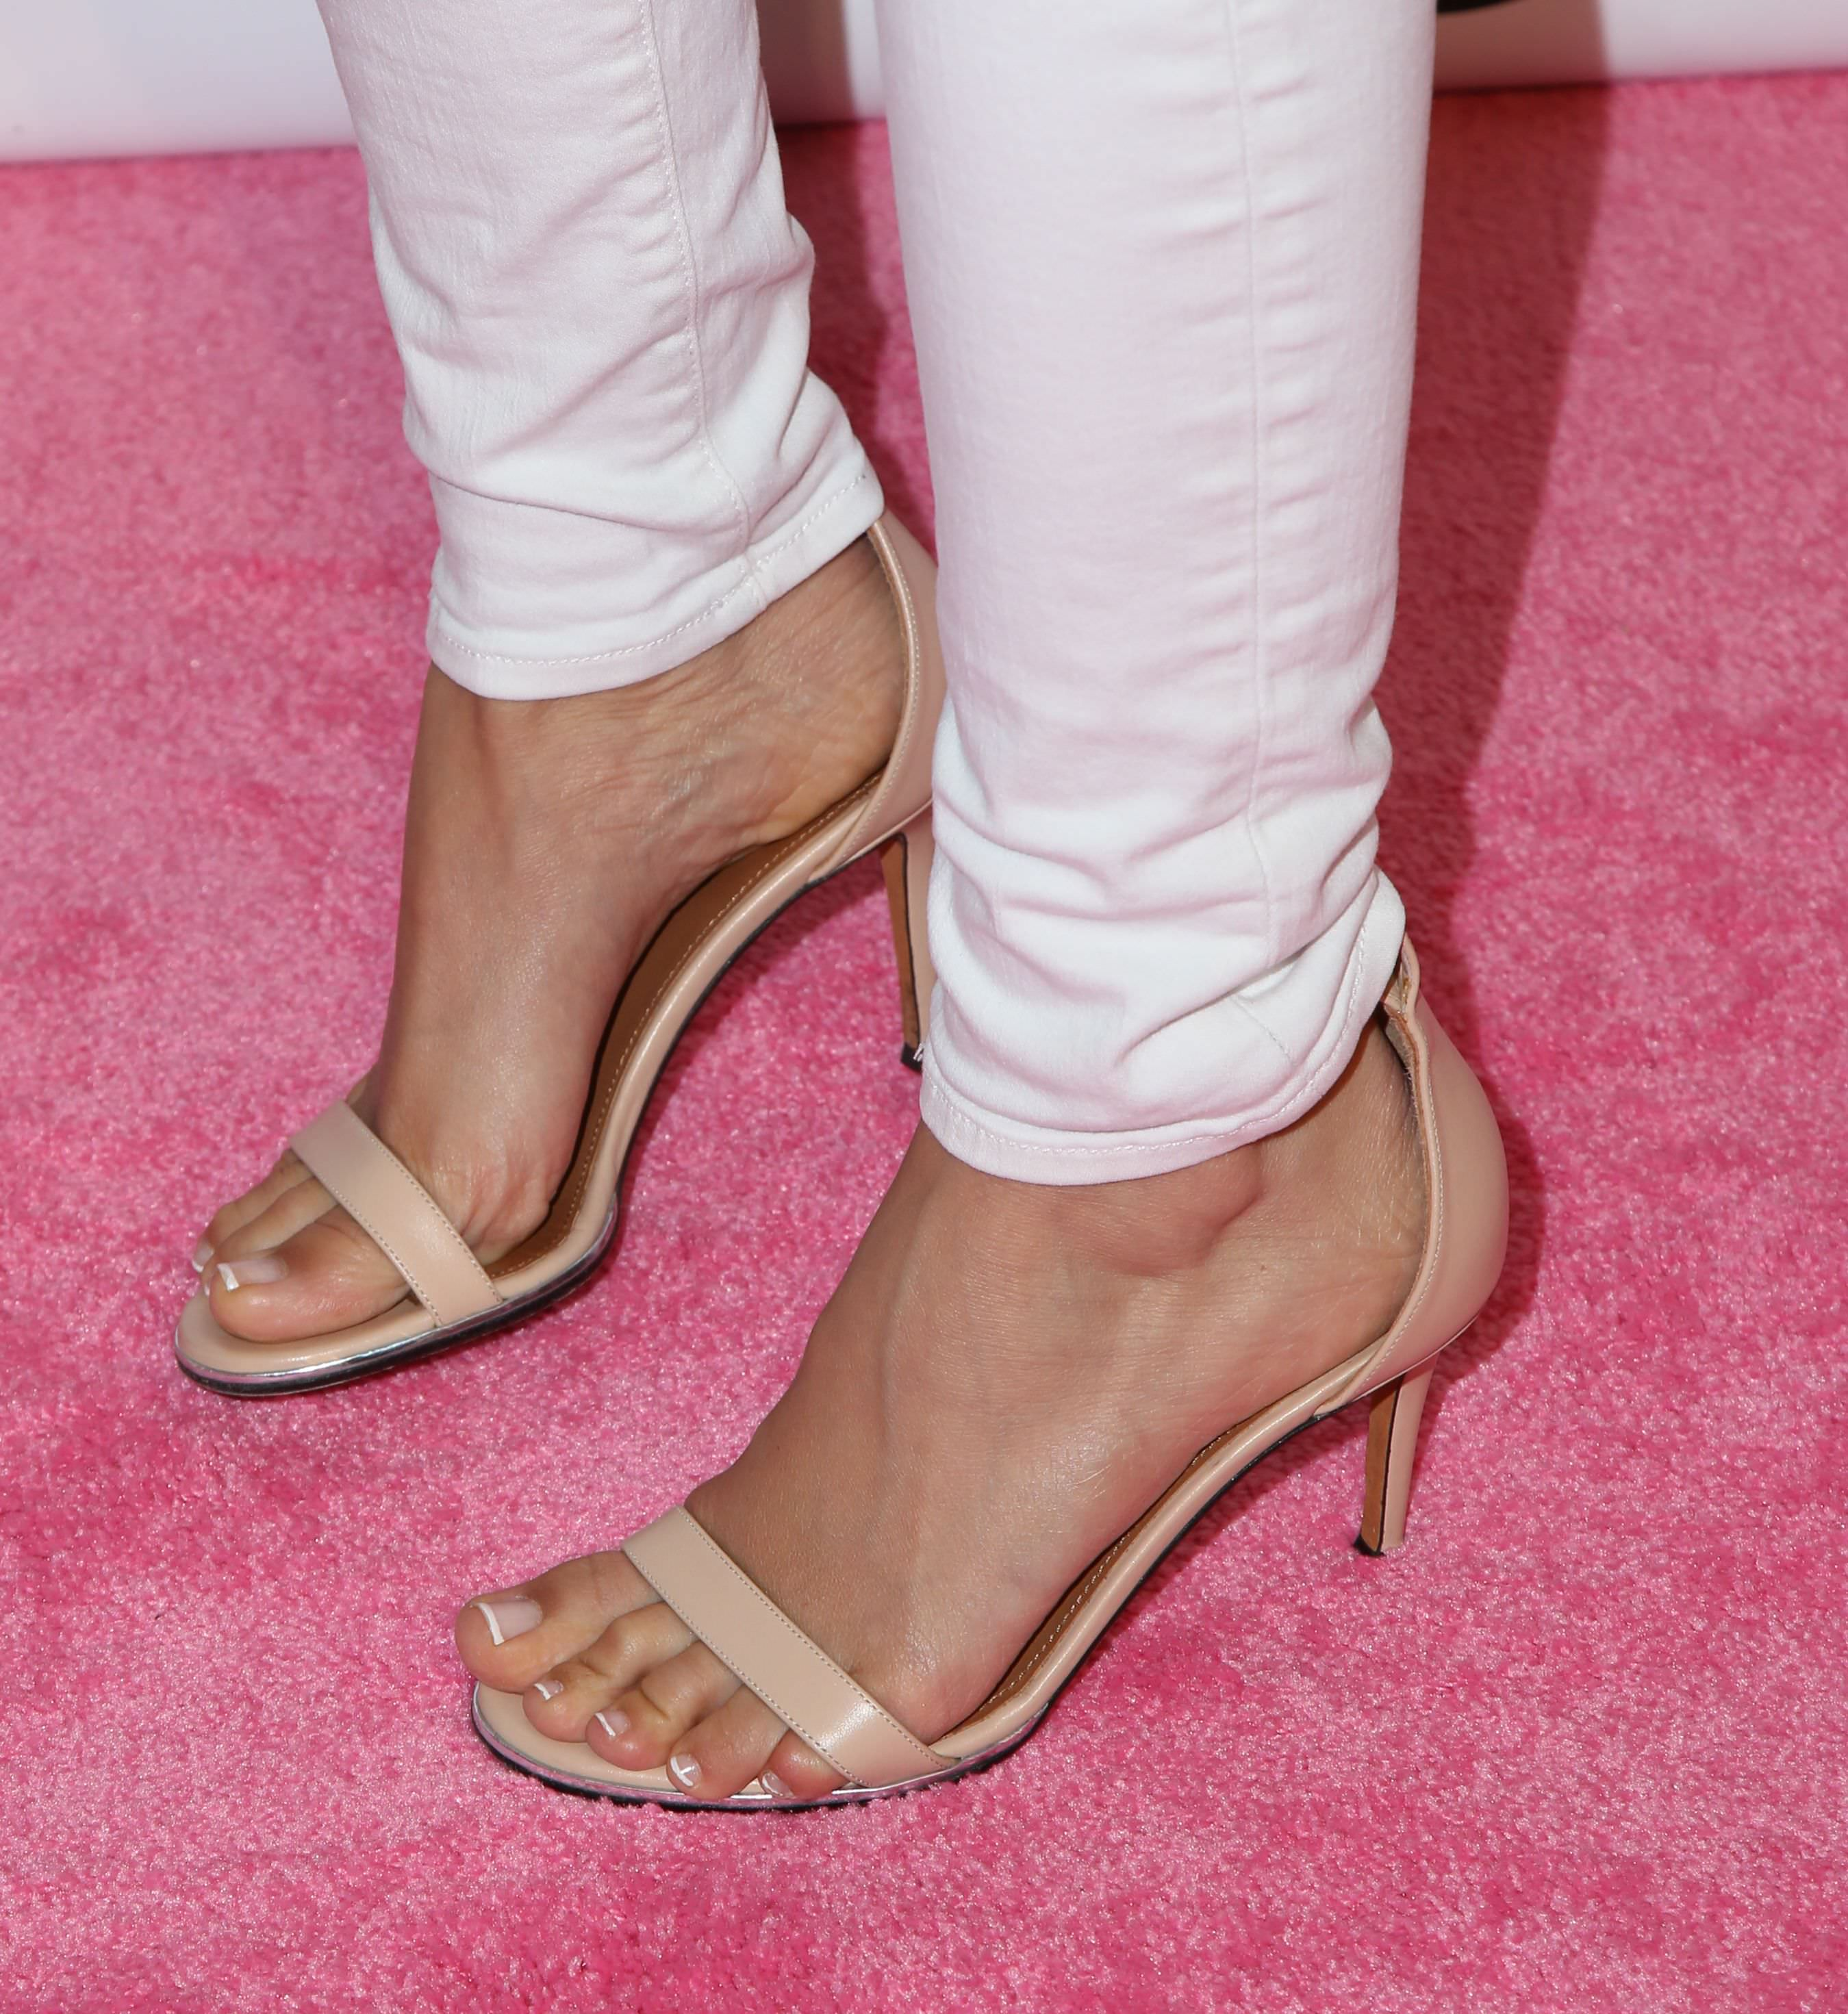 ashley tisdale feet